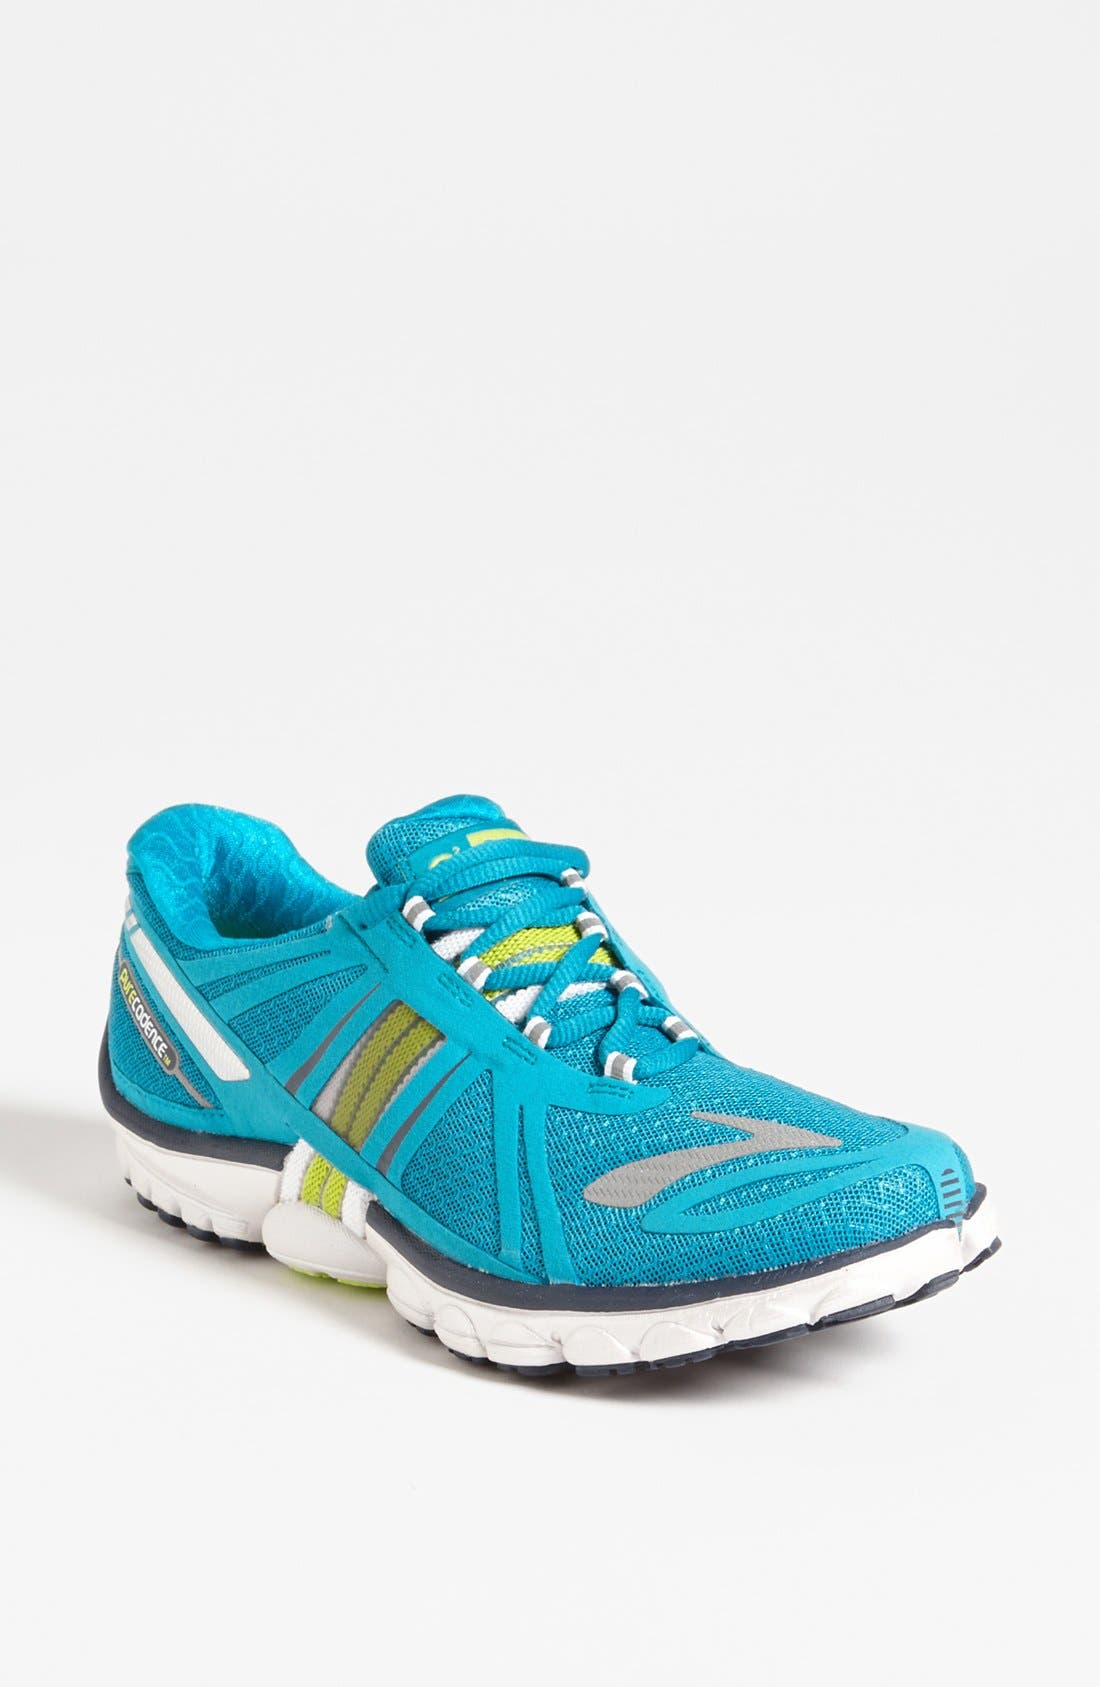 Alternate Image 1 Selected - Brooks 'Pure Cadence 2' Running Shoe (Women)(Regular Retail Price: $119.95)